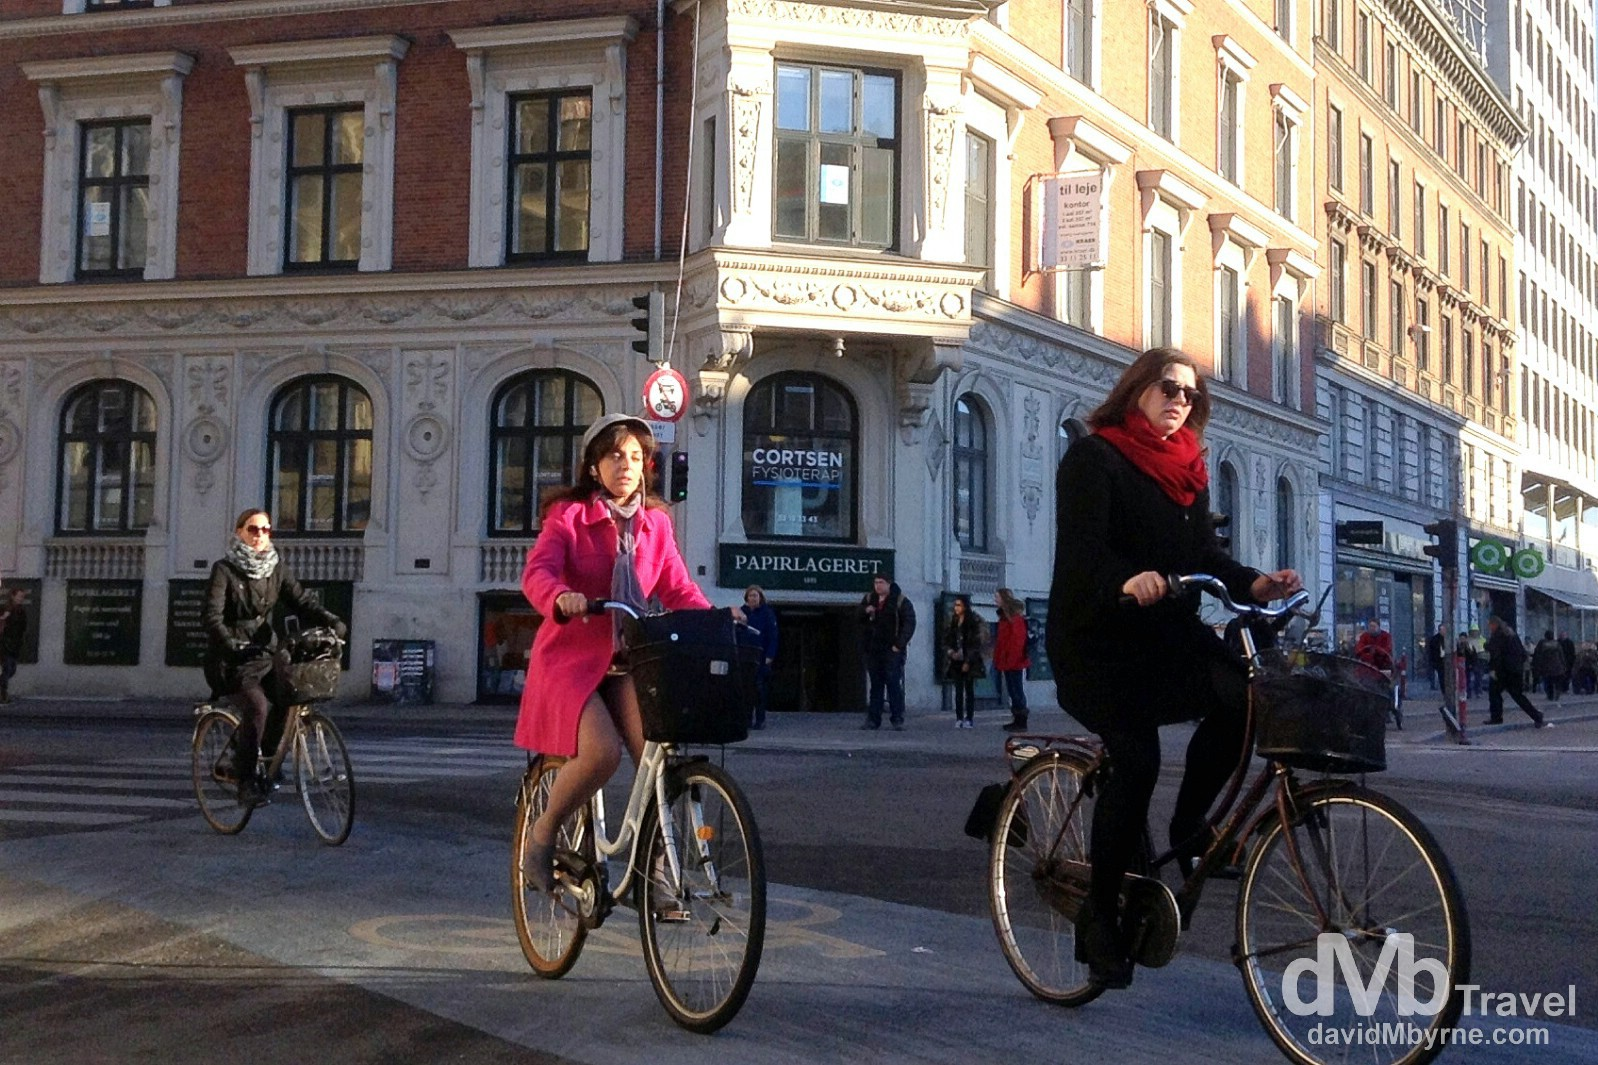 Cycling on the streets of Copenhagen, Denmark. March 13th, 2014 (iPod Touch v5)